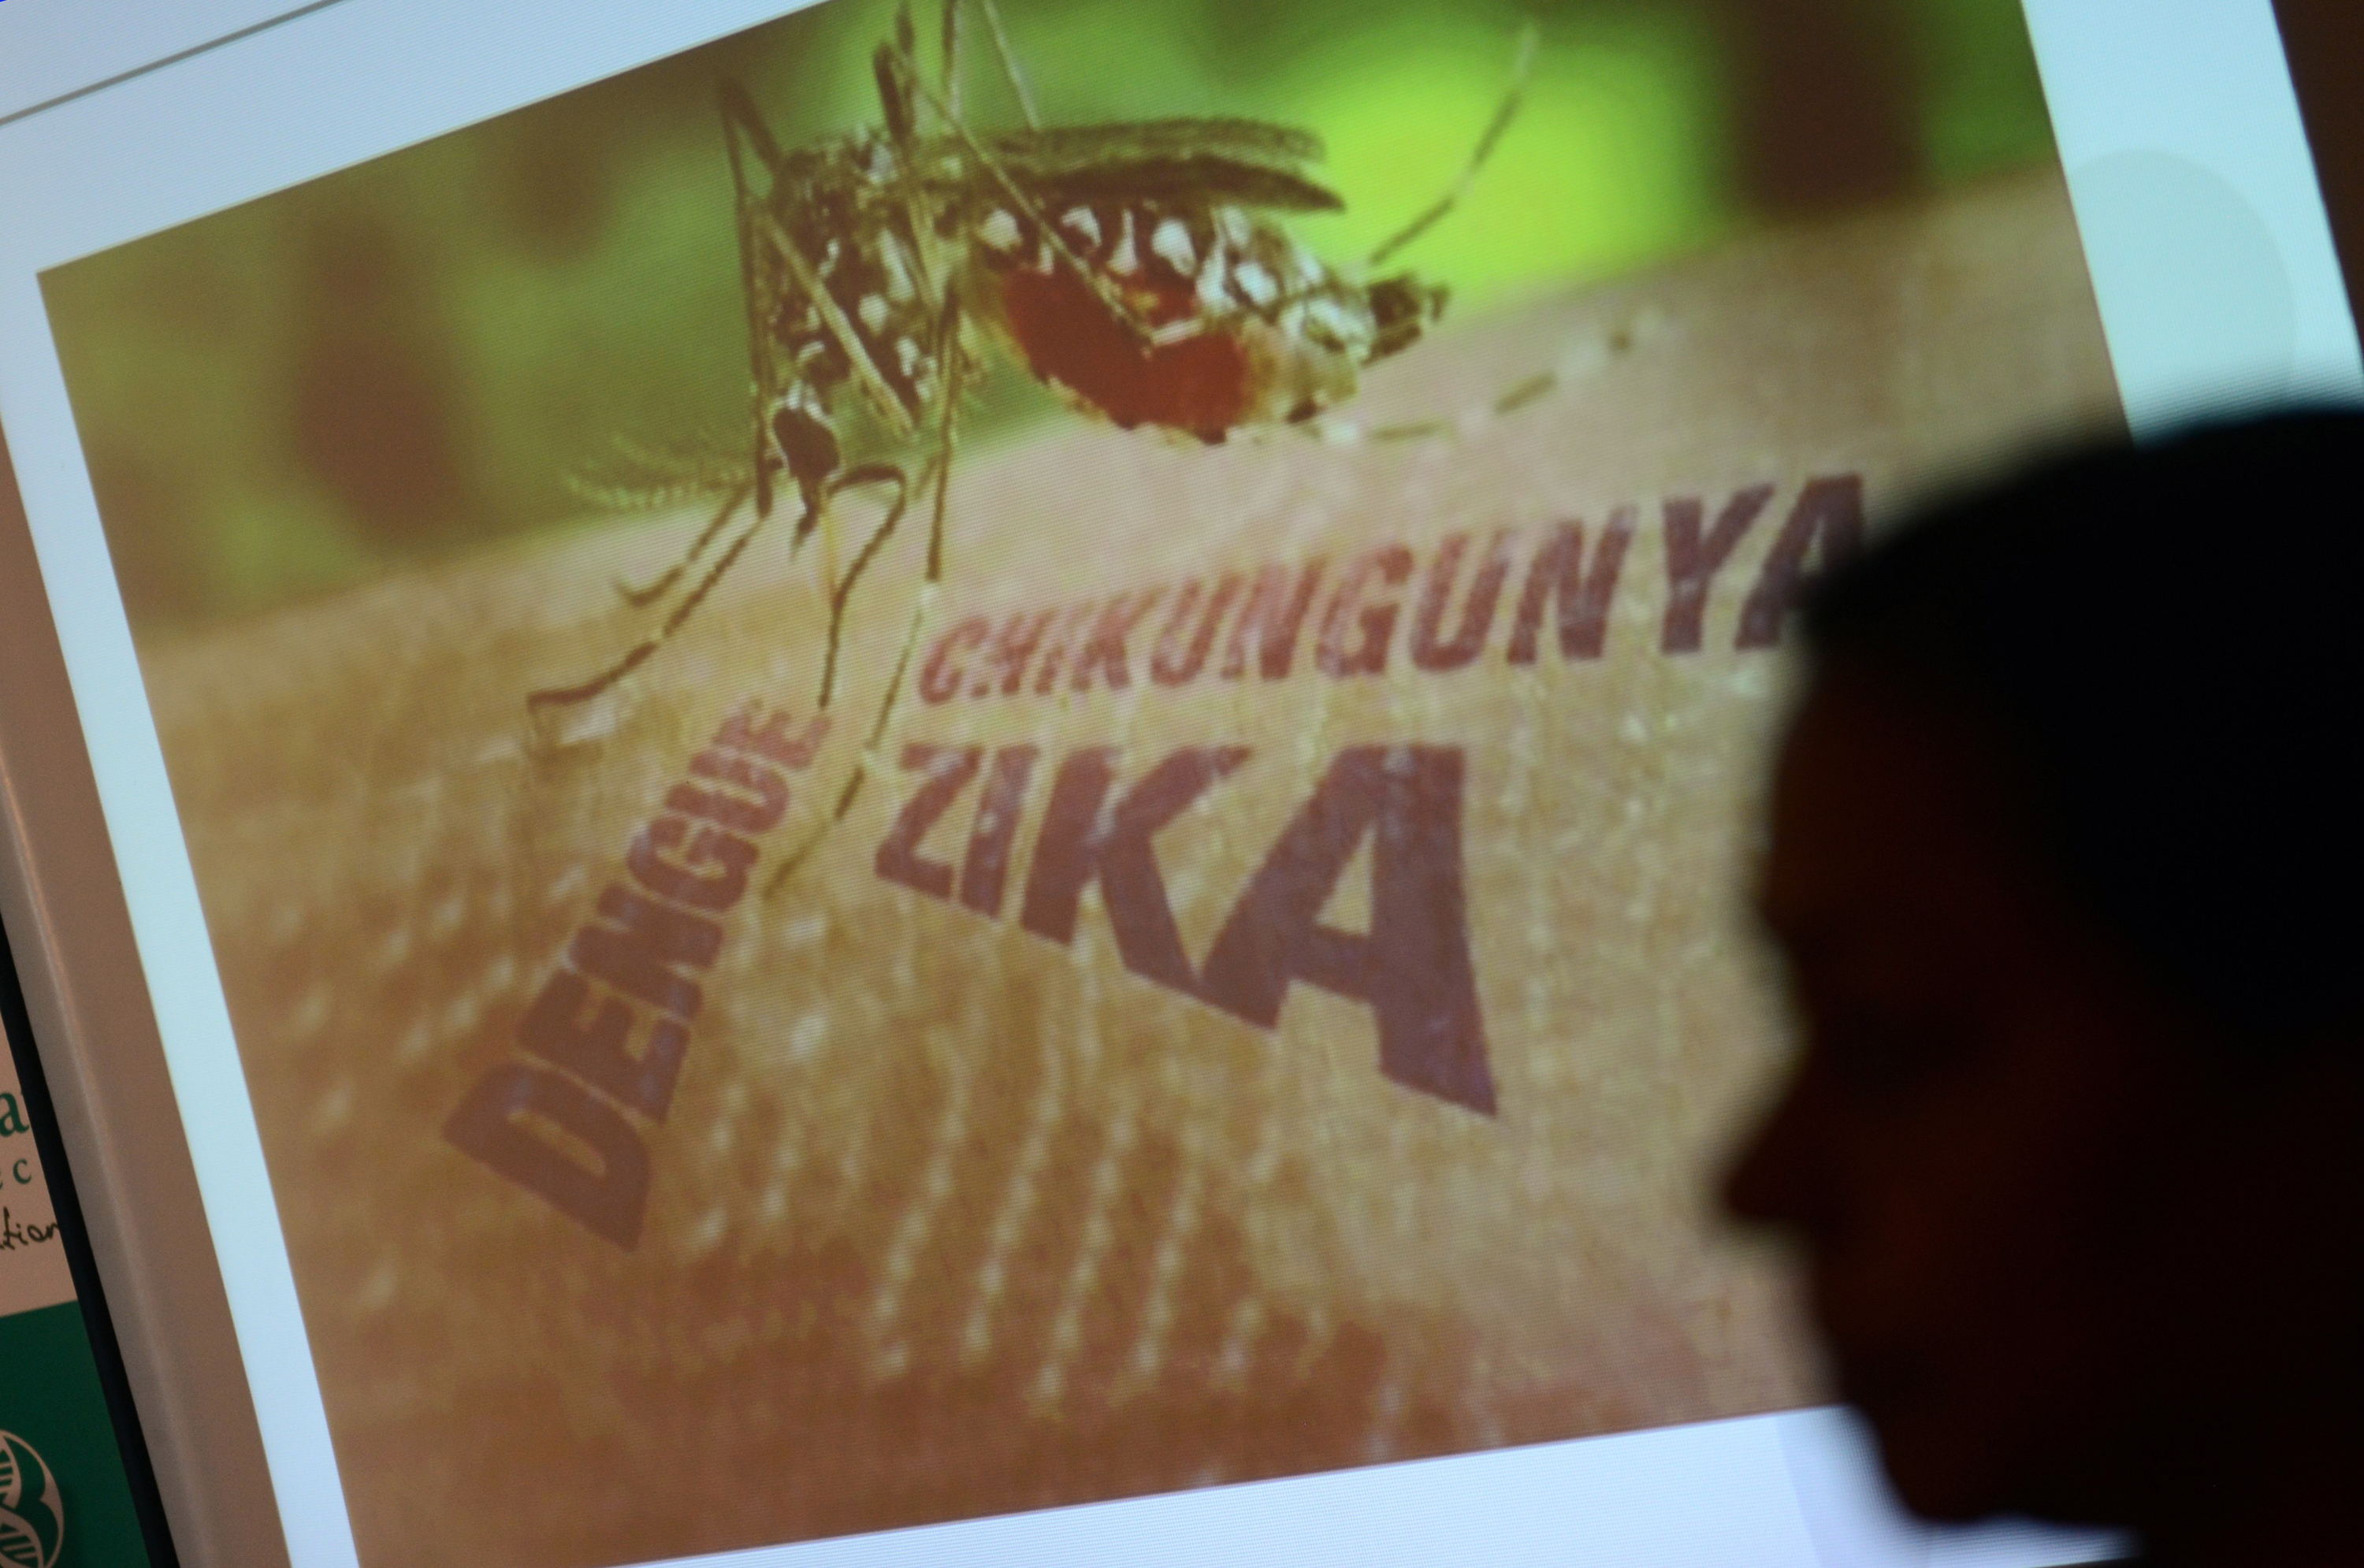 Images of a presentation on the Zika virus are seen at a press conference in Hyderabad on February 3, 2016. Vaccines and bio-therapeutic manufacturer Bharat Biotech said it was developing two candidates for vaccines for Zika infection. AFP PHOTO / Noah SEELAM / AFP / NOAH SEELAM        (Photo credit should read NOAH SEELAM/AFP/Getty Images)